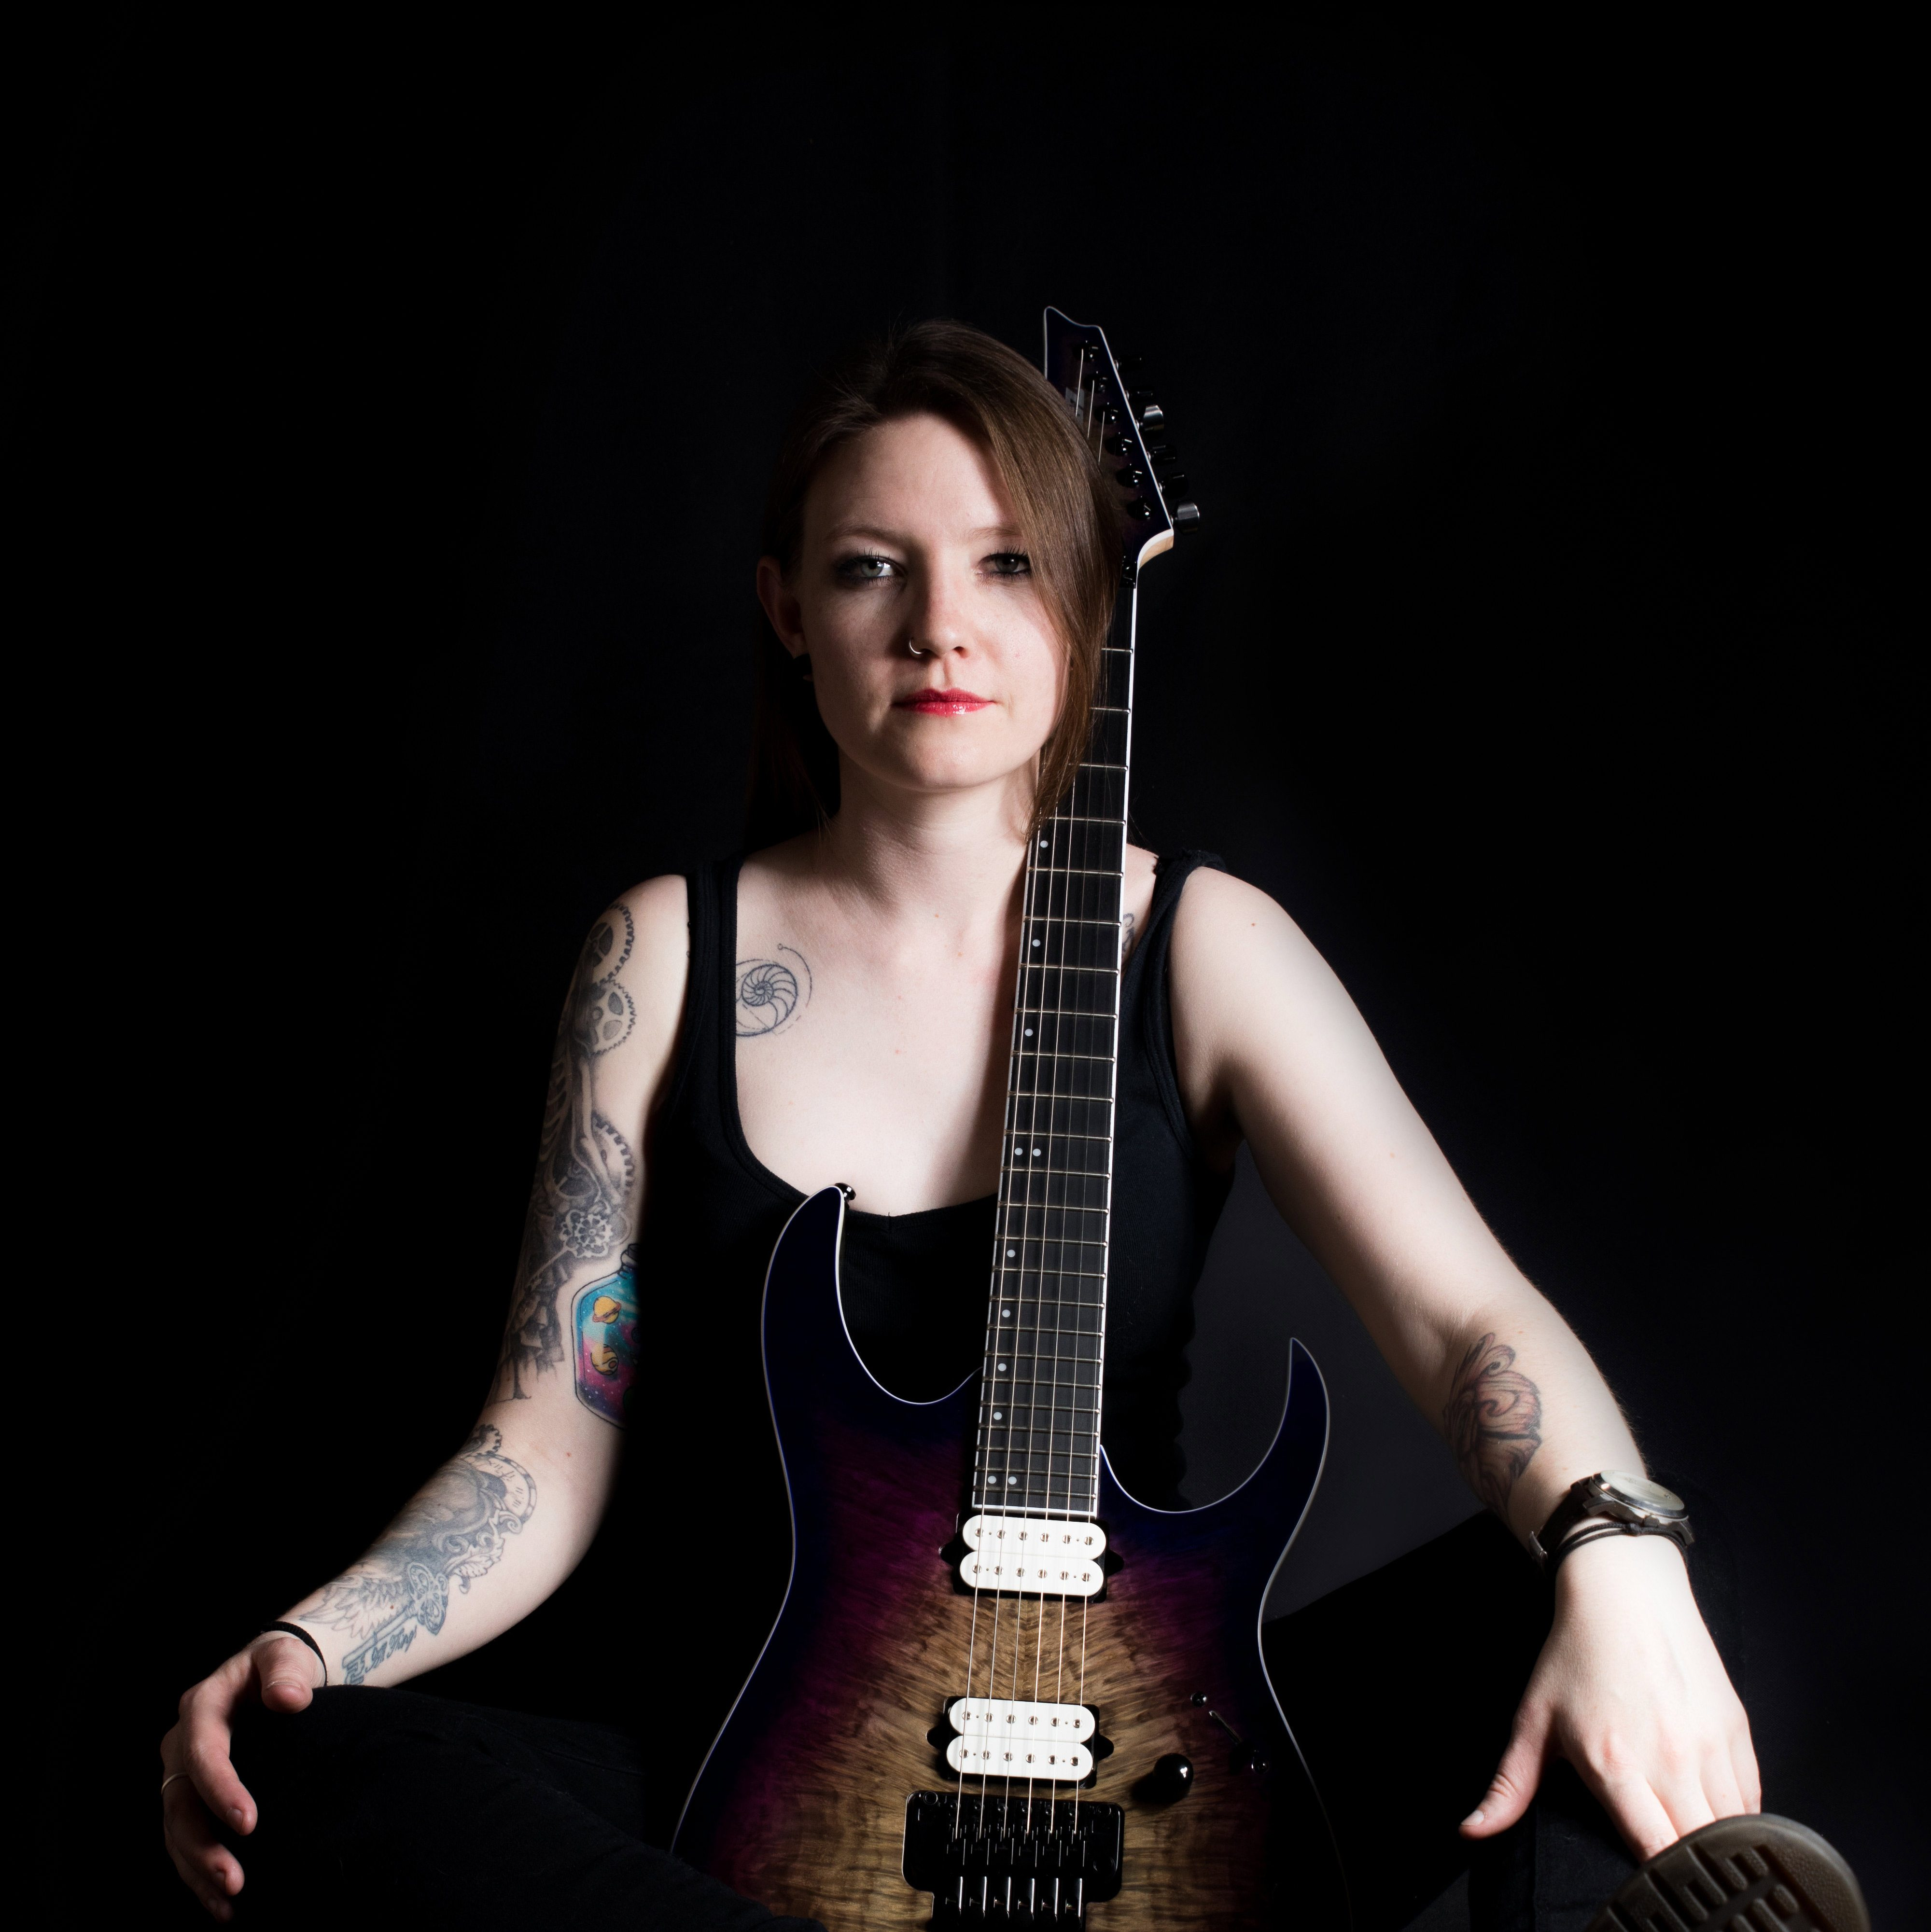 Robyn Ferguson from South Africa sitting with her Ibanez guitar. Robyn has many tattoos.